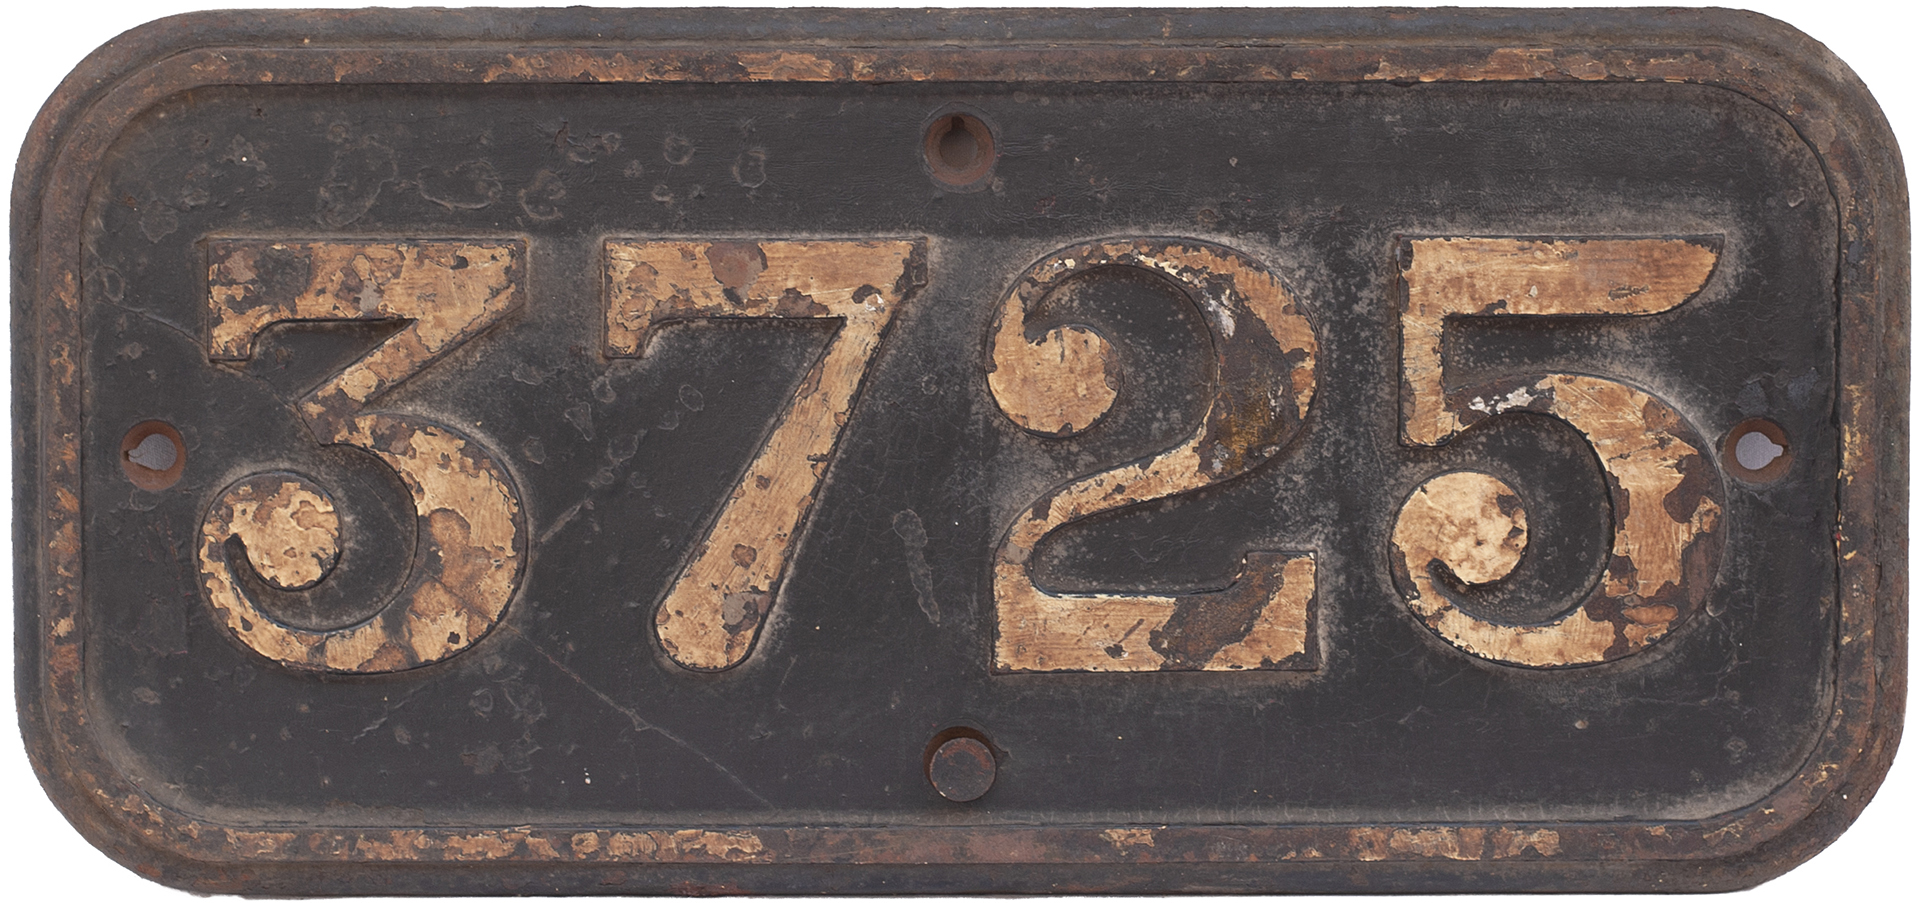 GWR cast iron cabside numberplate 3725 ex Collett 0-6-0 PT built at Swindon in 1937. Allocated to